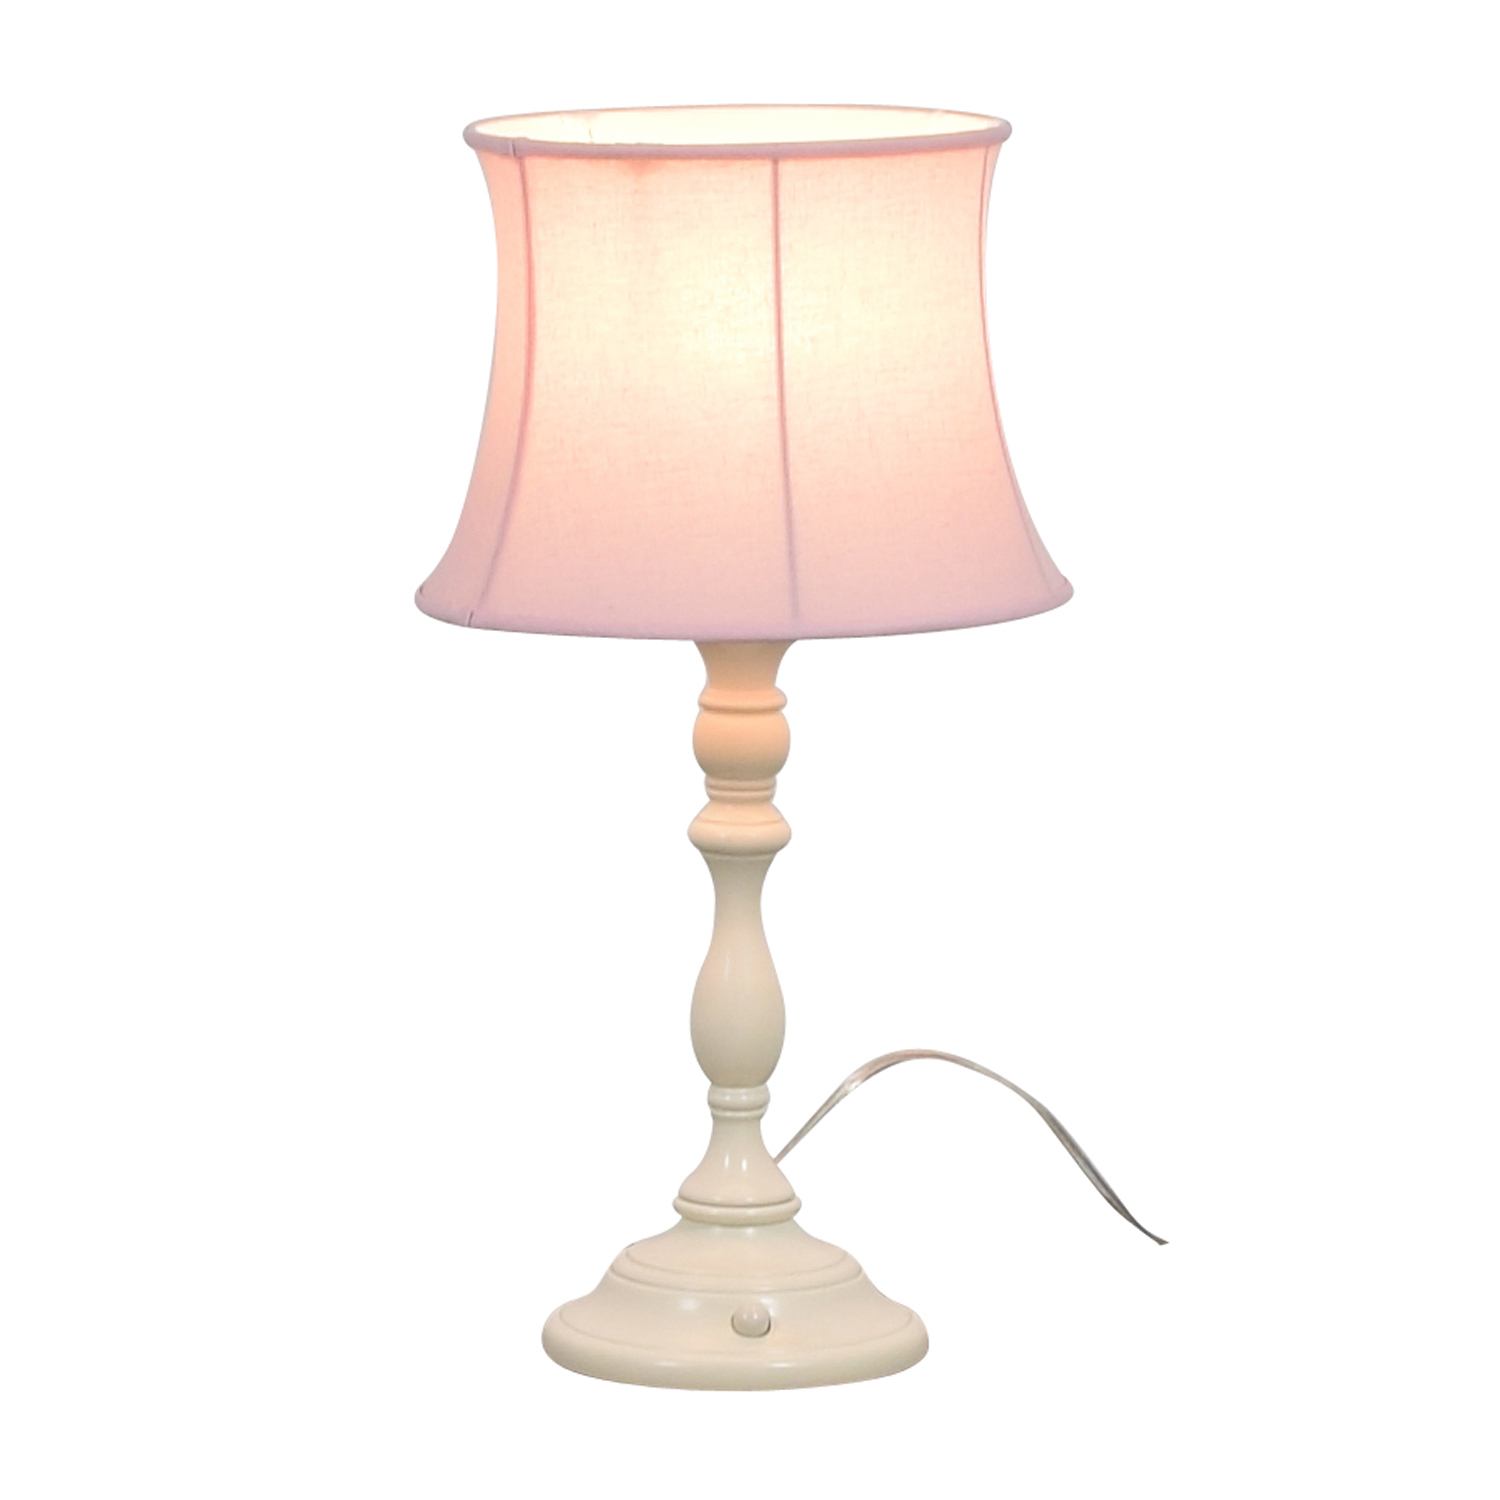 Pottery Barn Pottery Barn Payton Push Button Base with Pink Lamp Shade for sale